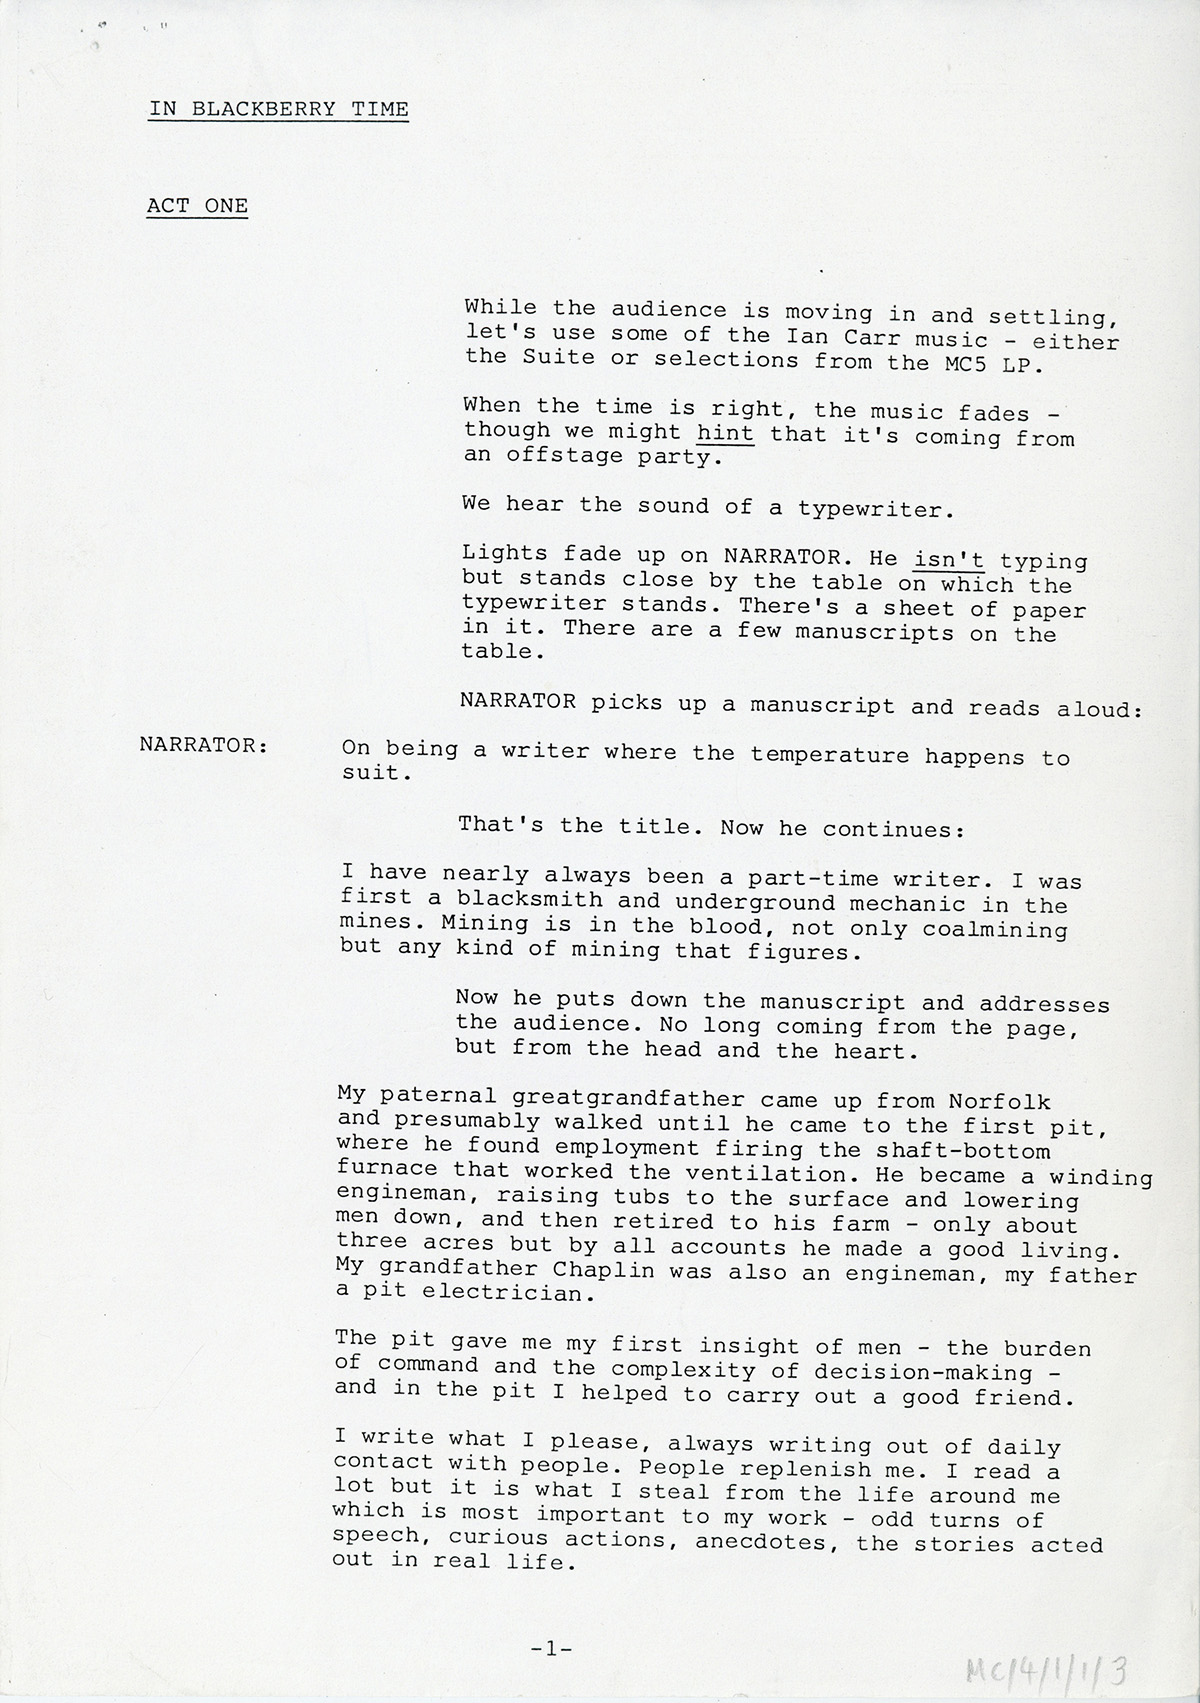 Scanned page from a book - listen to audio below for transcript